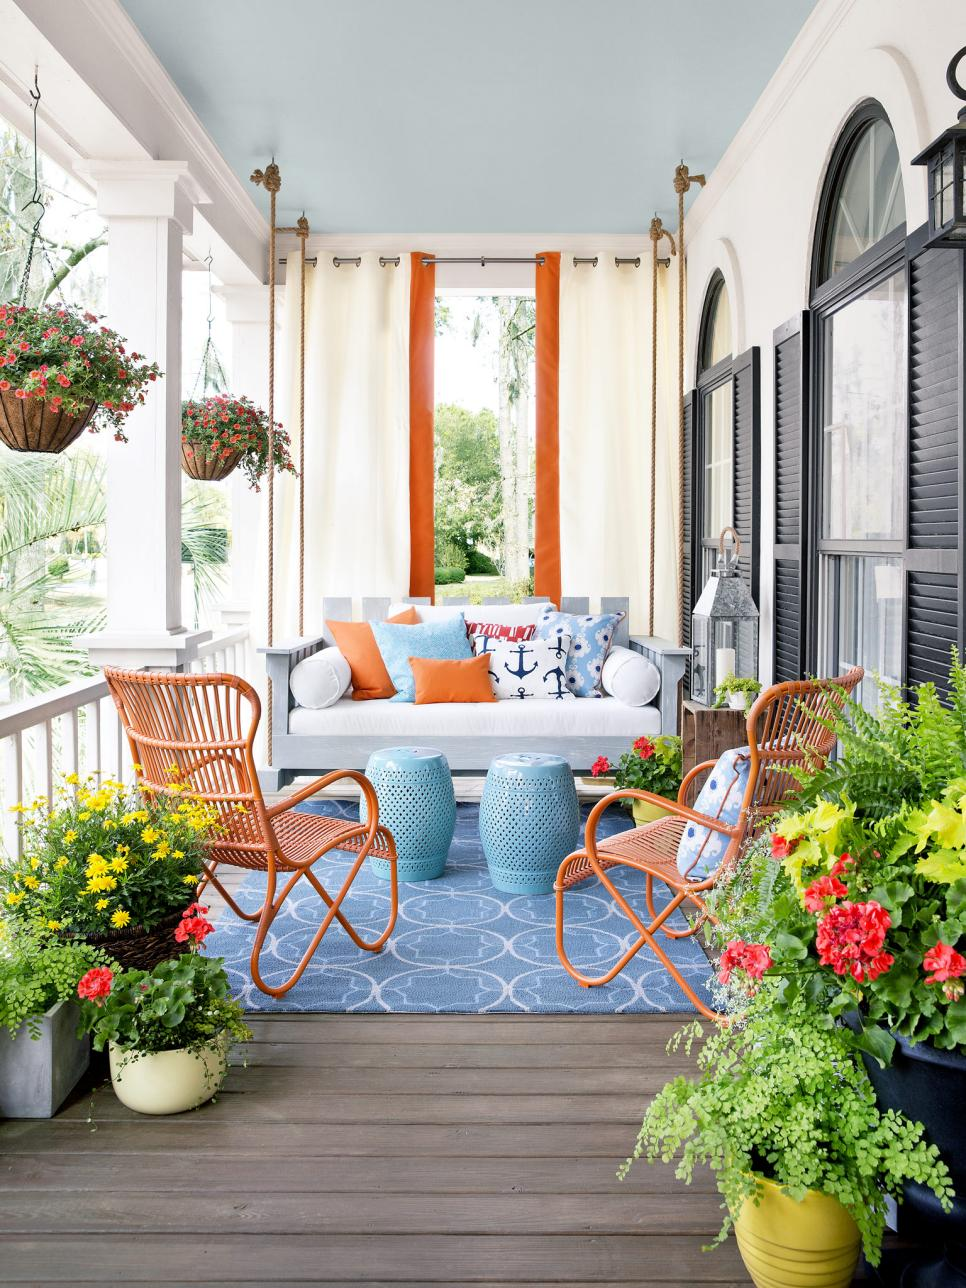 Porch design and decorating ideas hgtv for Outdoor front porch decor